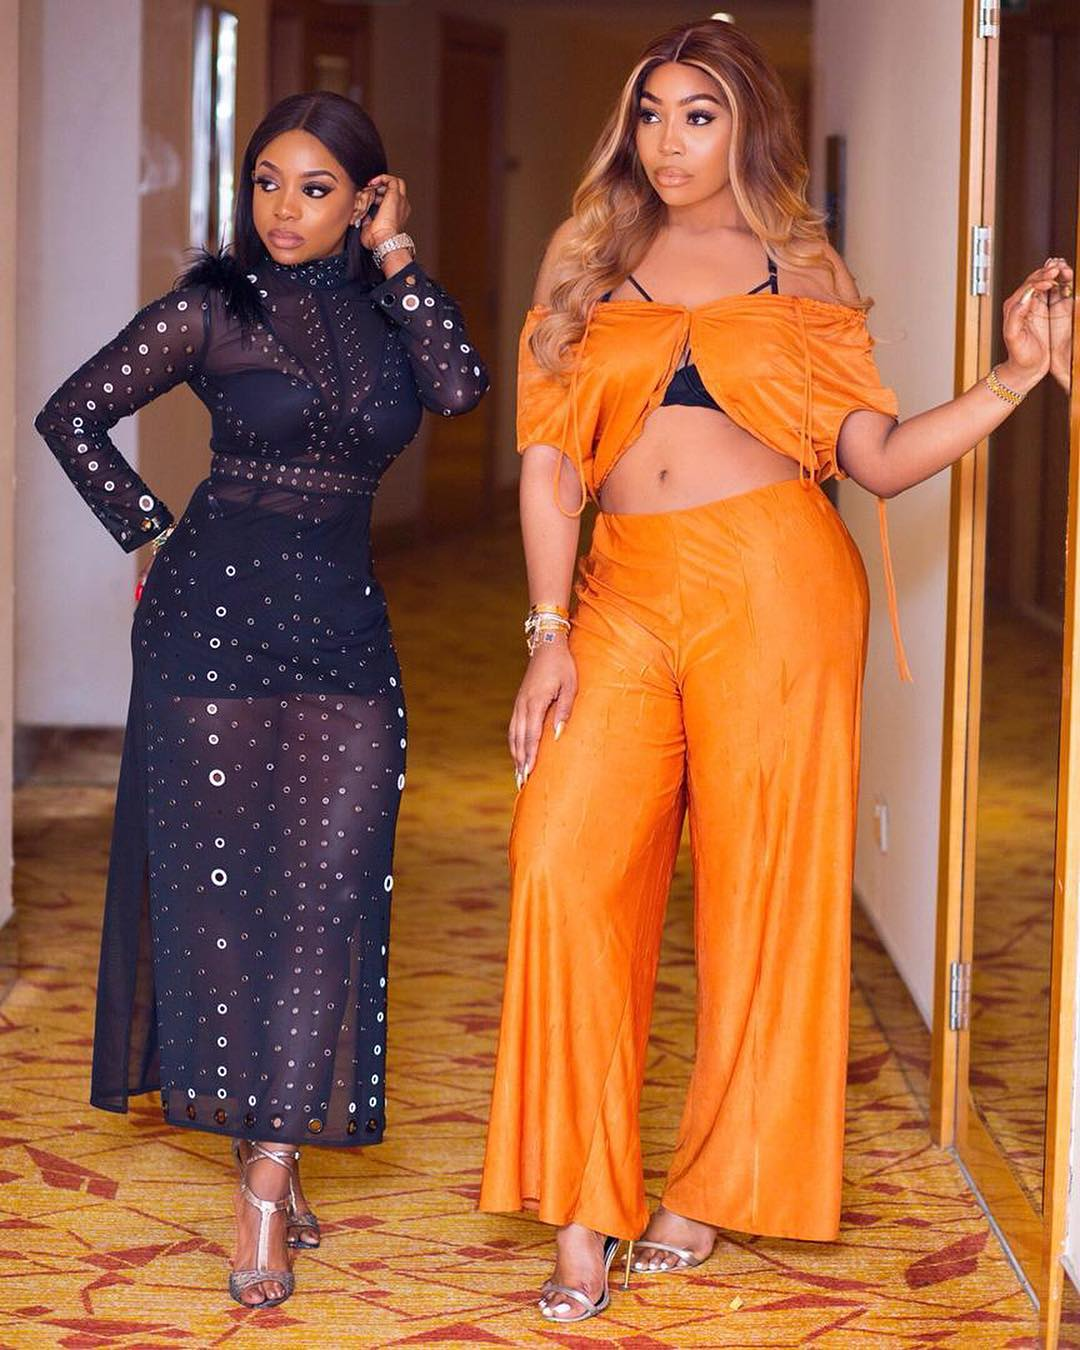 image of kika osunde and chioma ikokwu at the arise fashion week looking lovely in orange and black jumpsuits